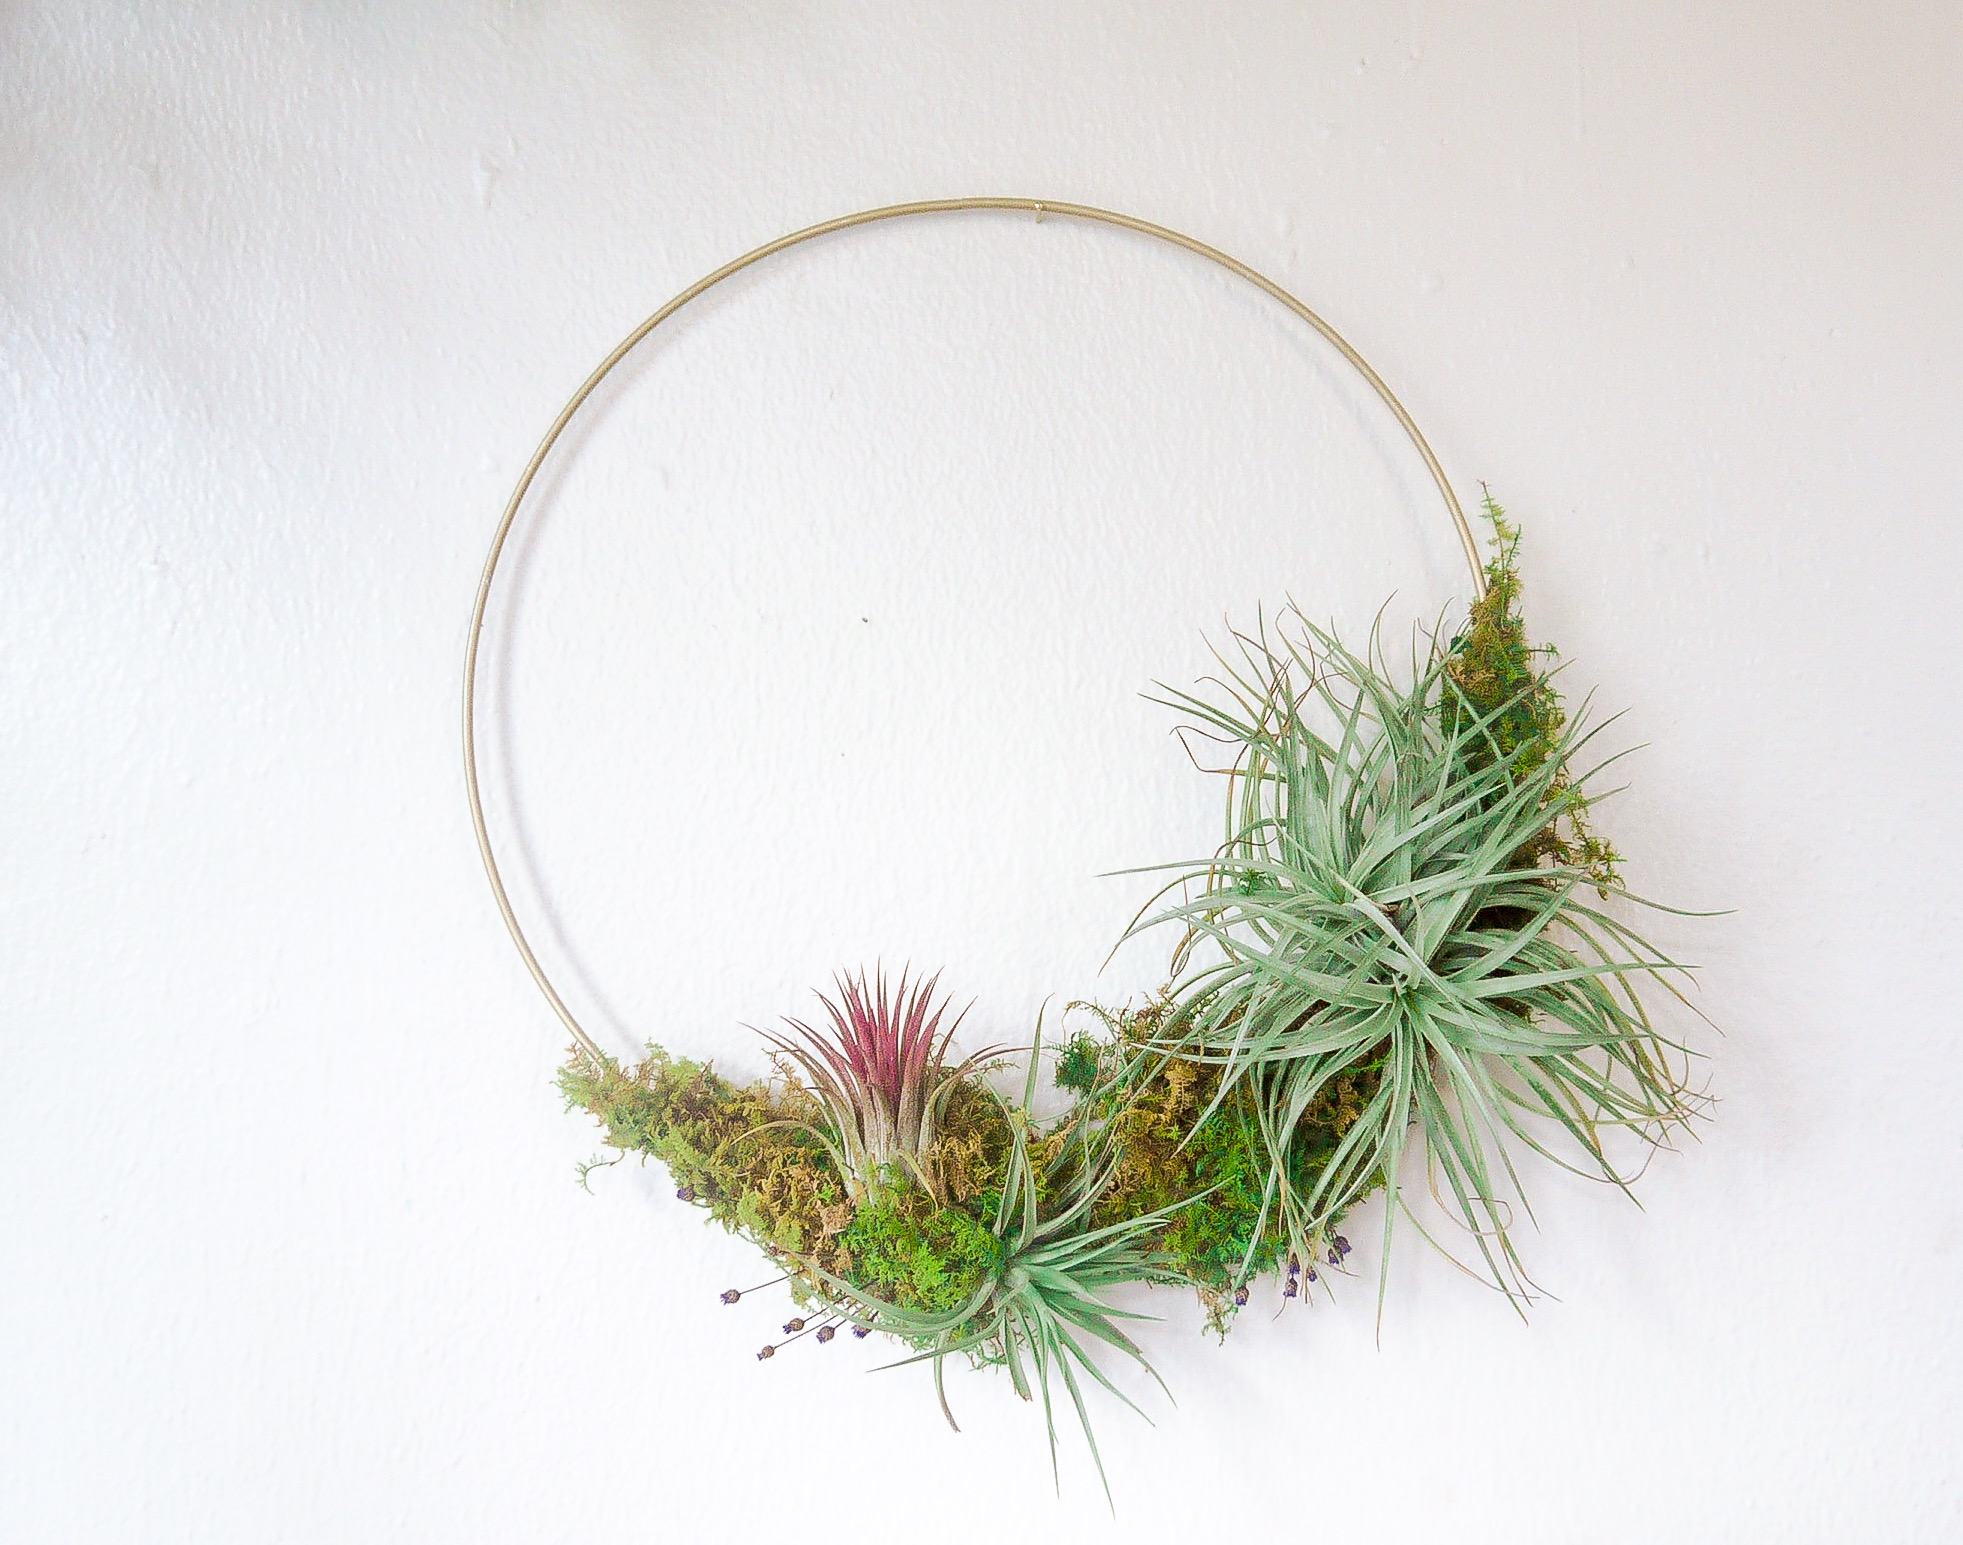 Tillandsia Wreath Workshop! - Craft a modern air plant wreath with us in the heart of the French Quarter at Hundred Acre Design! $60      December 20        6pm - 8pm